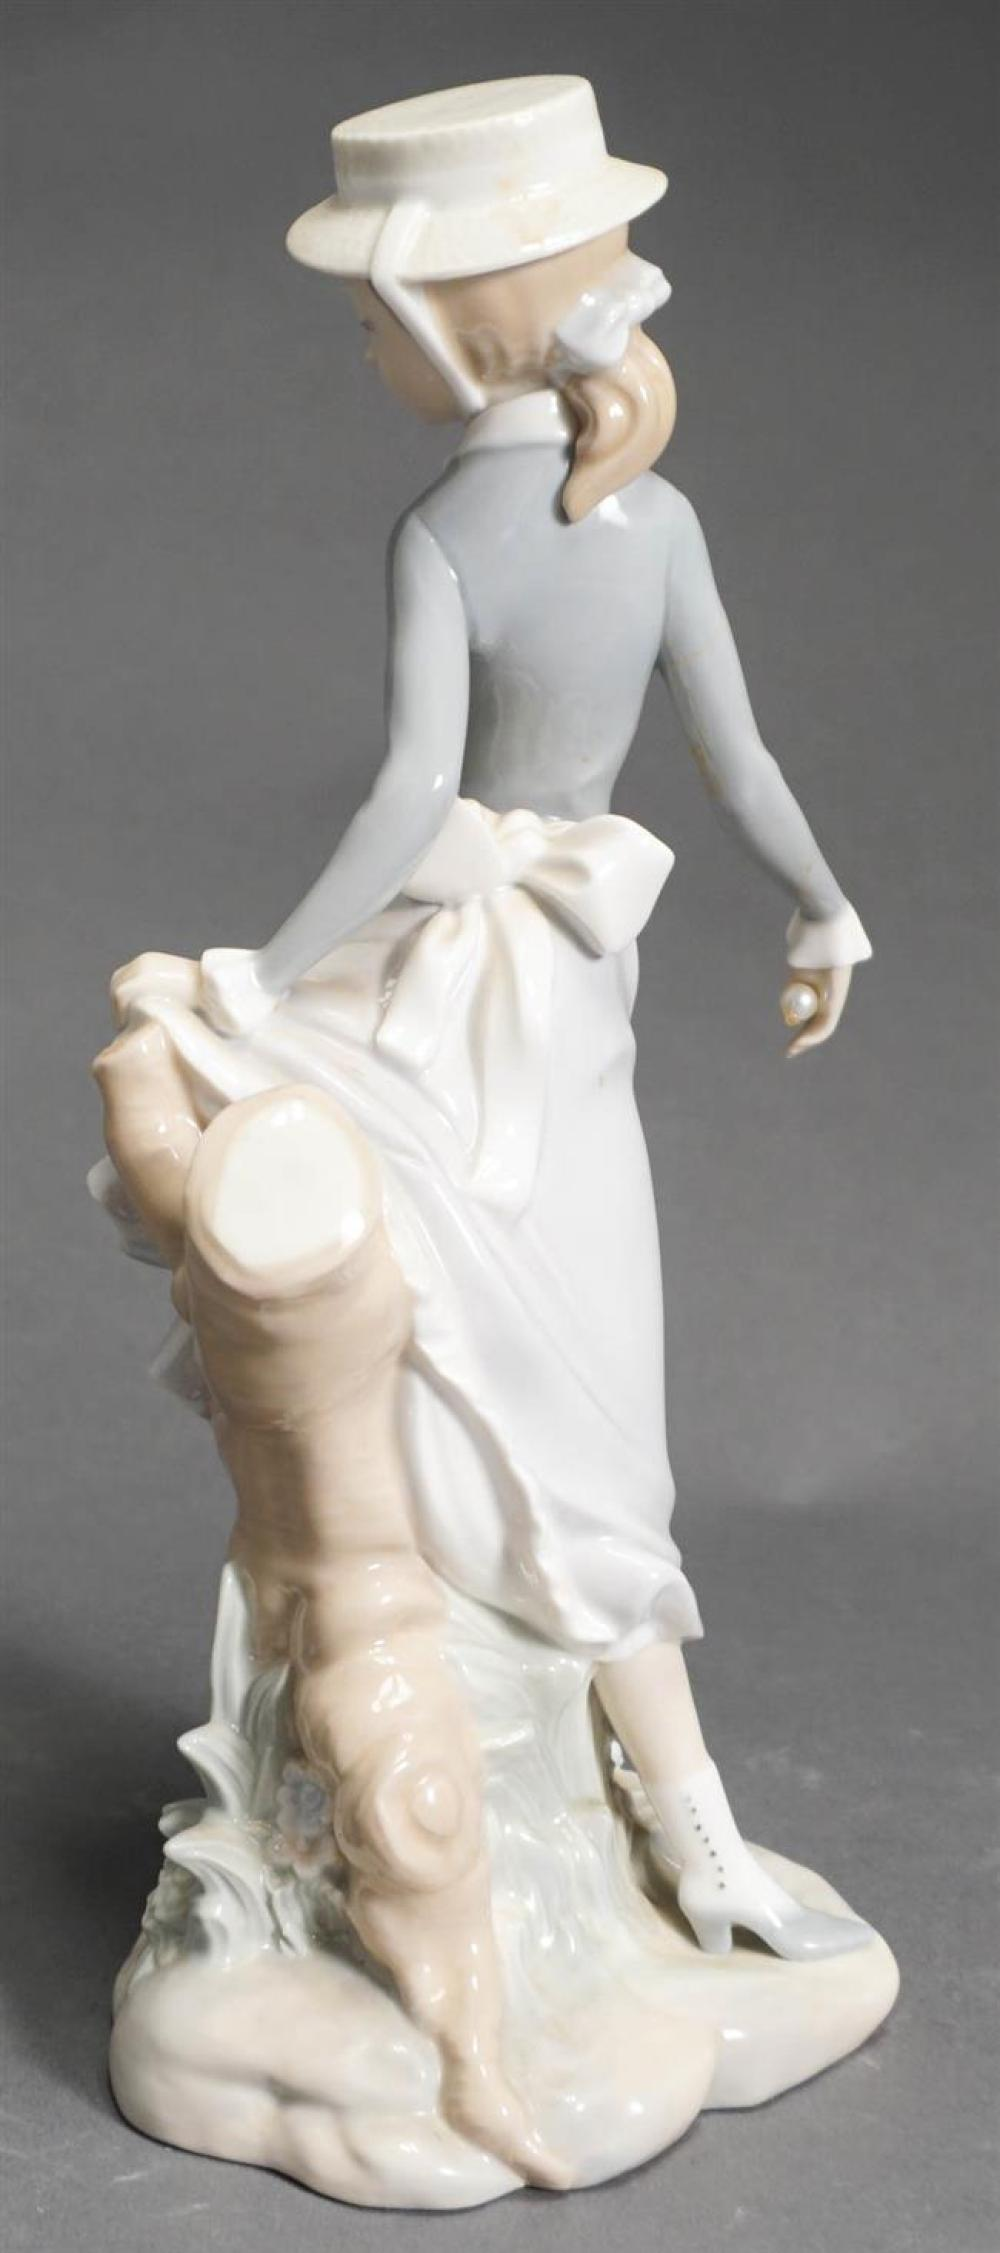 Lladro Porcelain Figure of Young Girl (missing umbrella), H: 11-1/2 inches